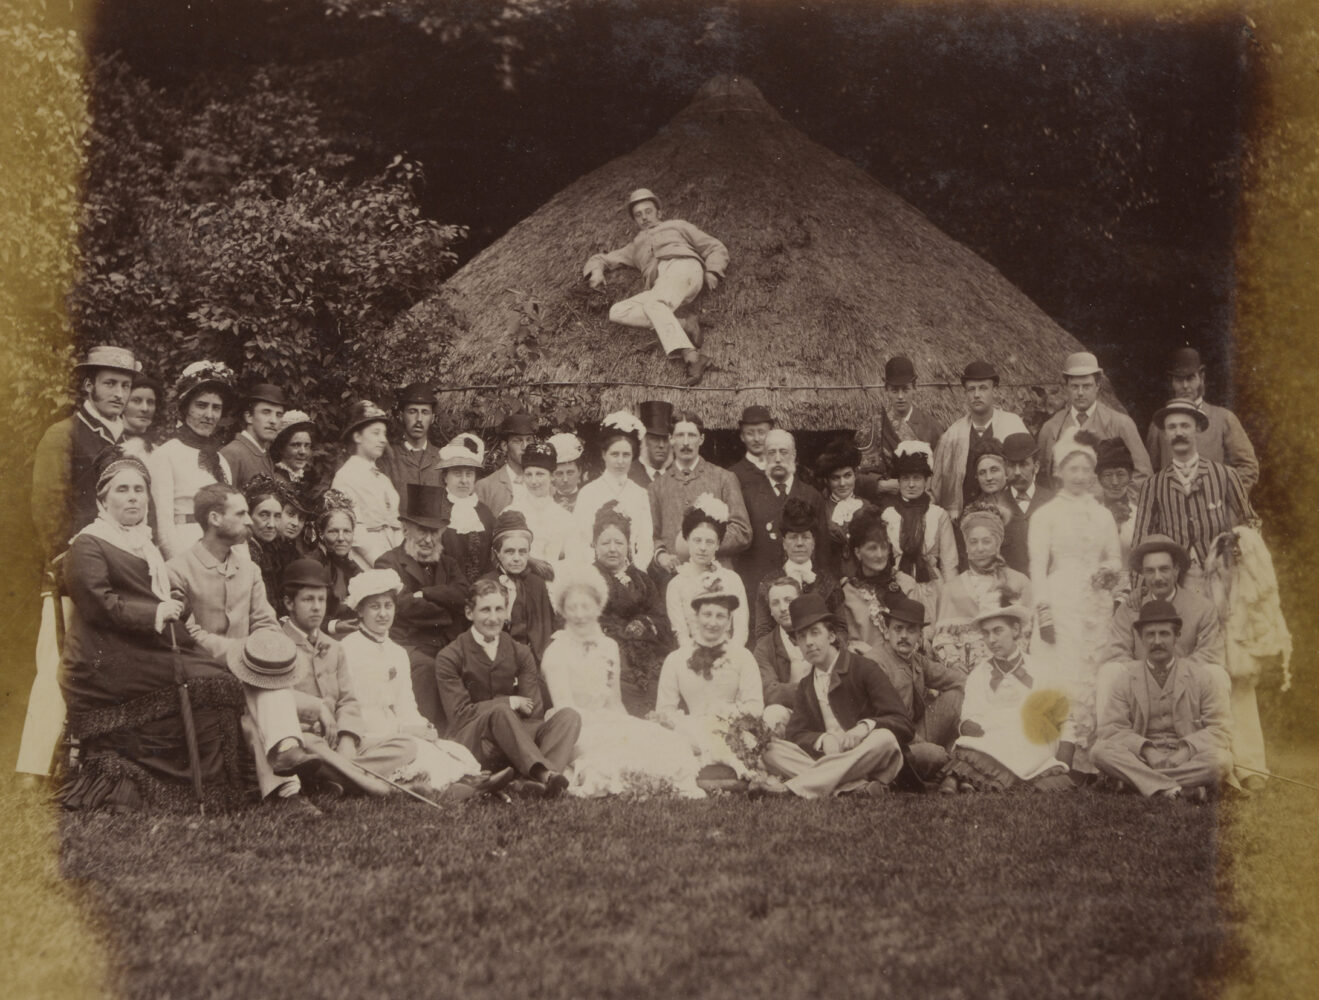 Group photograph including Oscar Wilde (front centre, in hat), Gertrude Ward (to Wilde's right), the diarist Florence Ward and others by Jules Guggenheim, 1876.